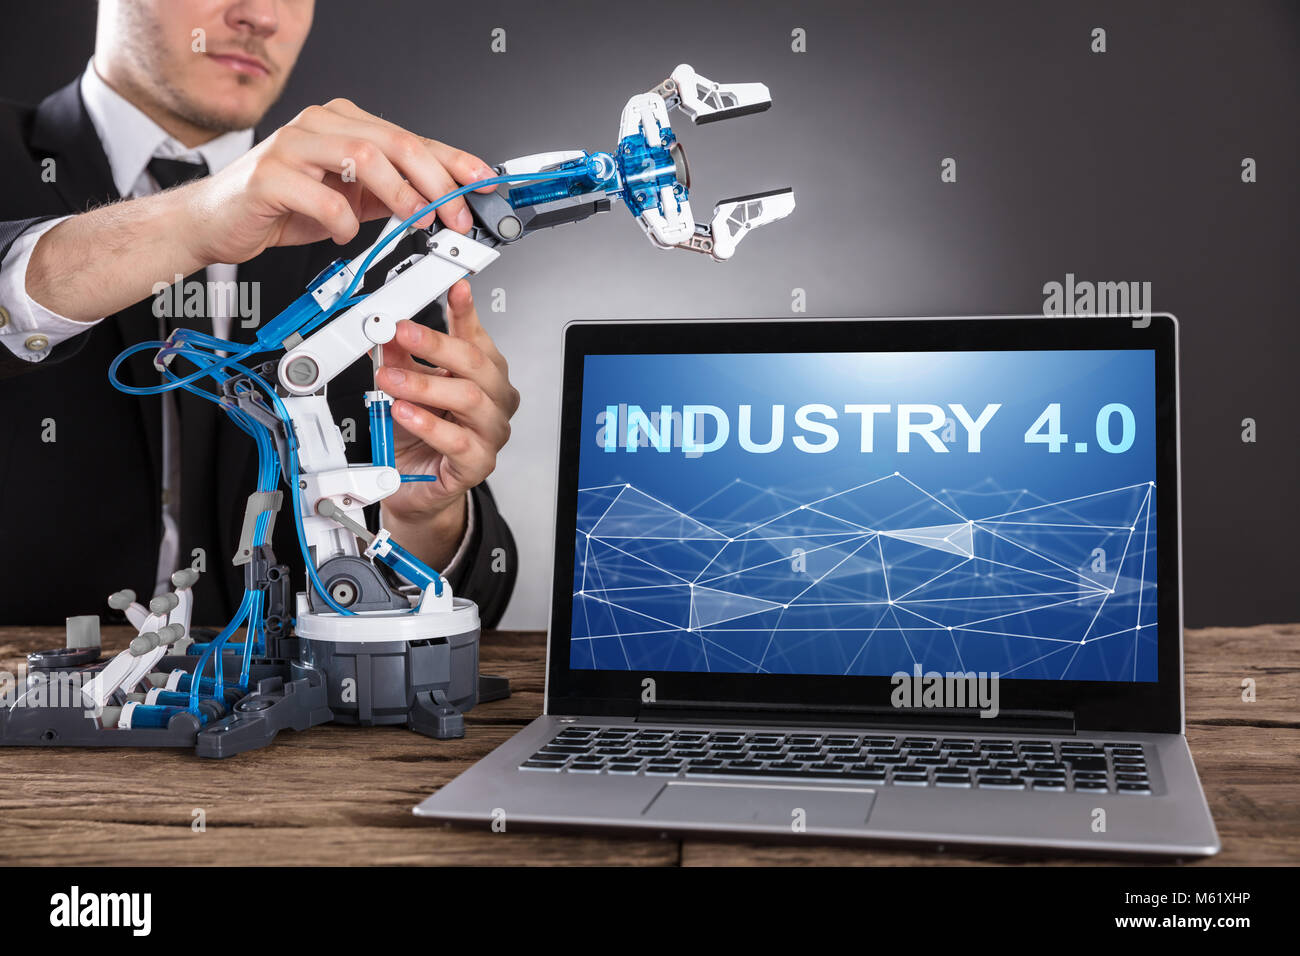 Close-up Of Businessman Building Robot With Laptop Screen Showing Industry 4.0 - Stock Image